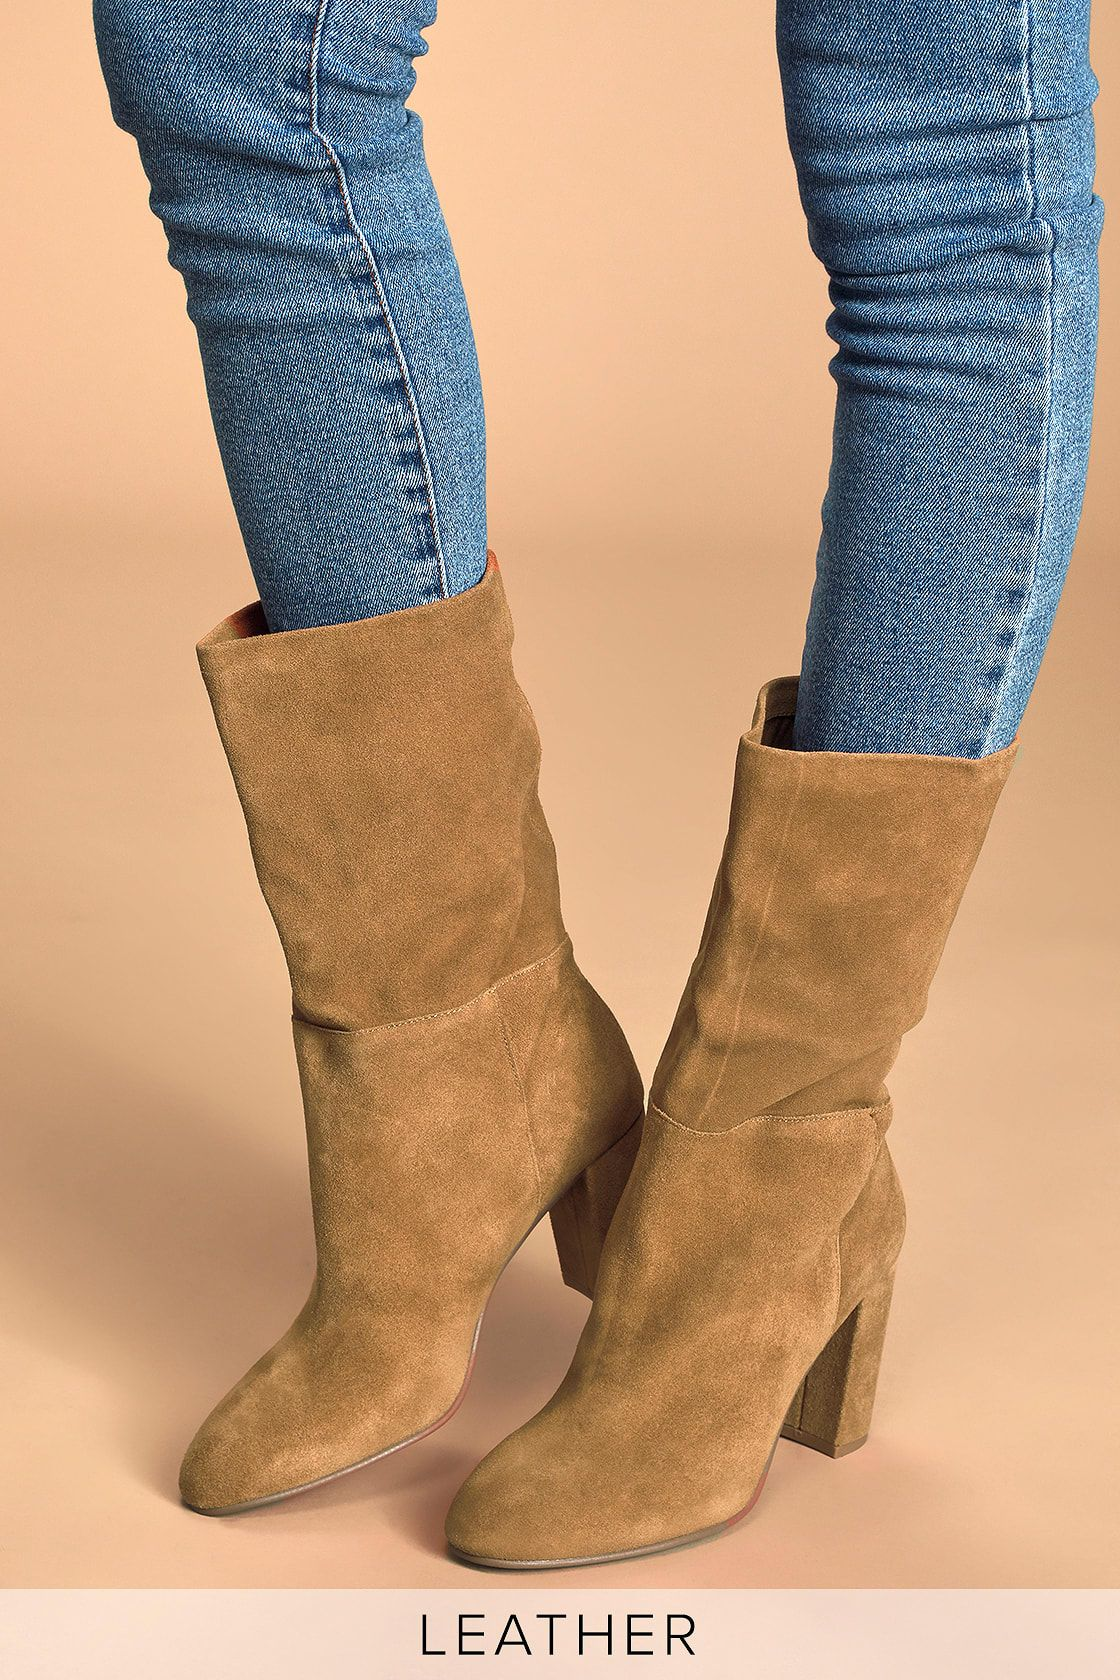 Keep Up Honey Brown Suede Leather Mid Calf High Heel Boots High